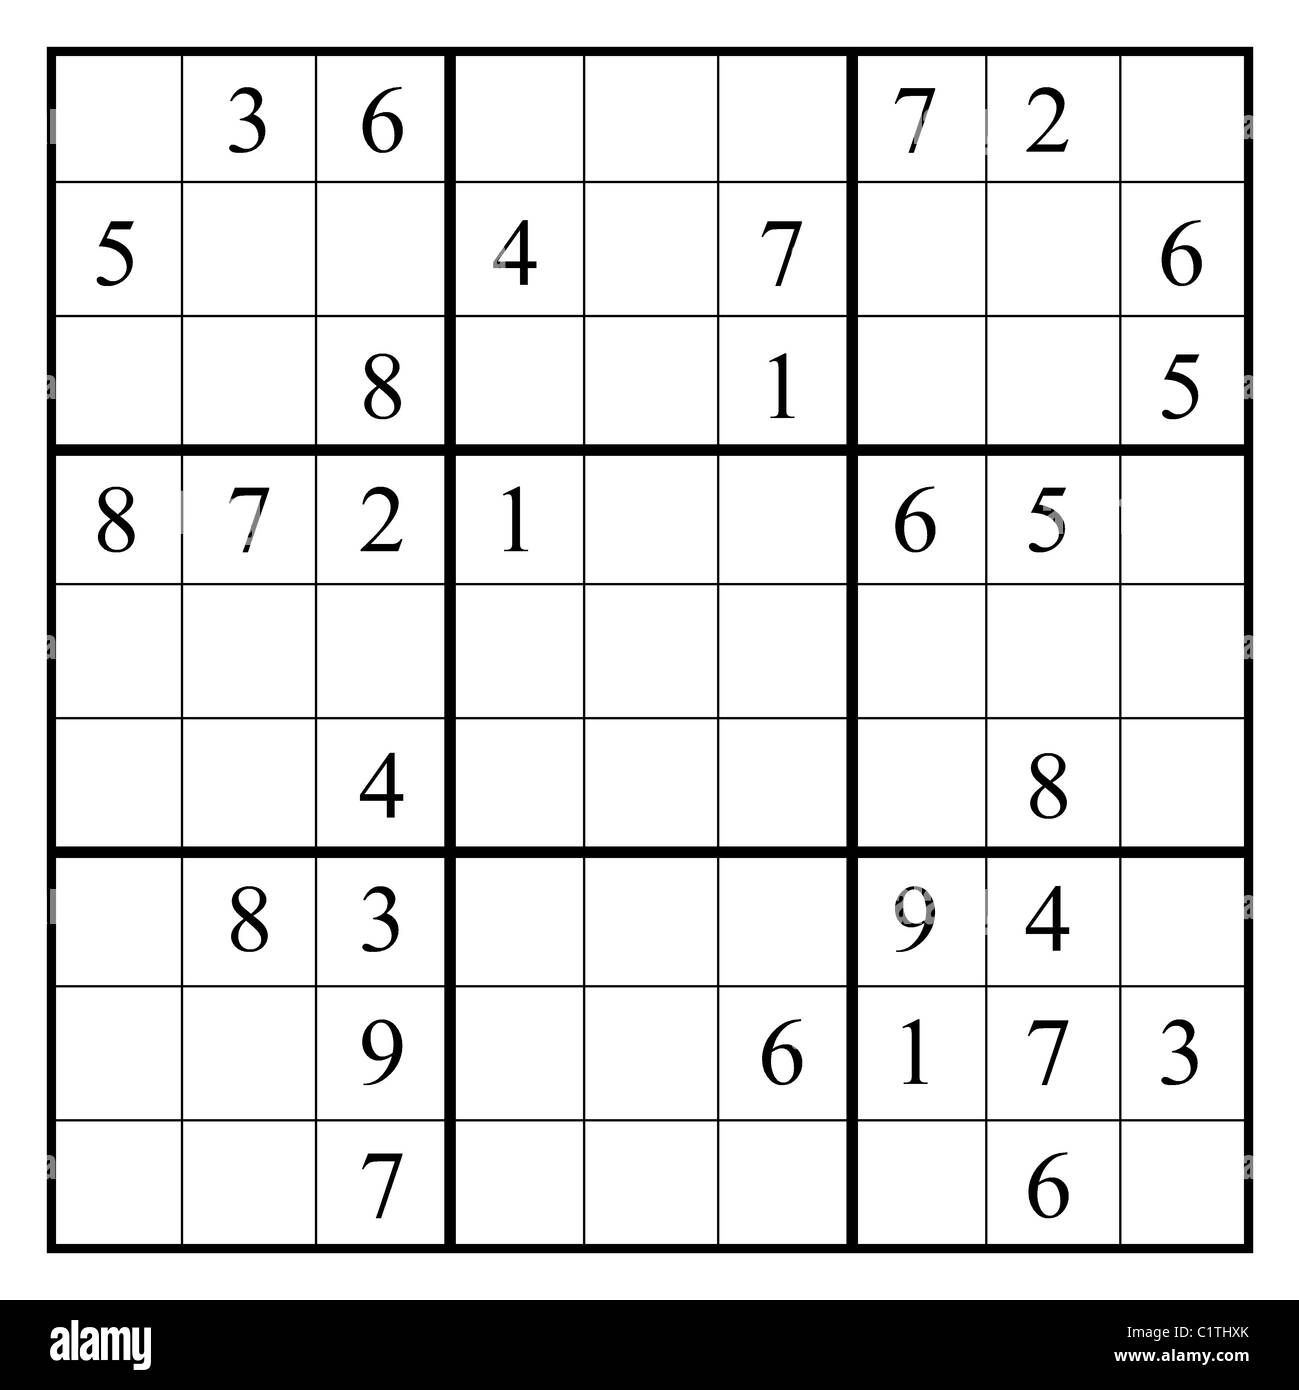 Sudoku Puzzle With Layout In The Form Of The Numerals